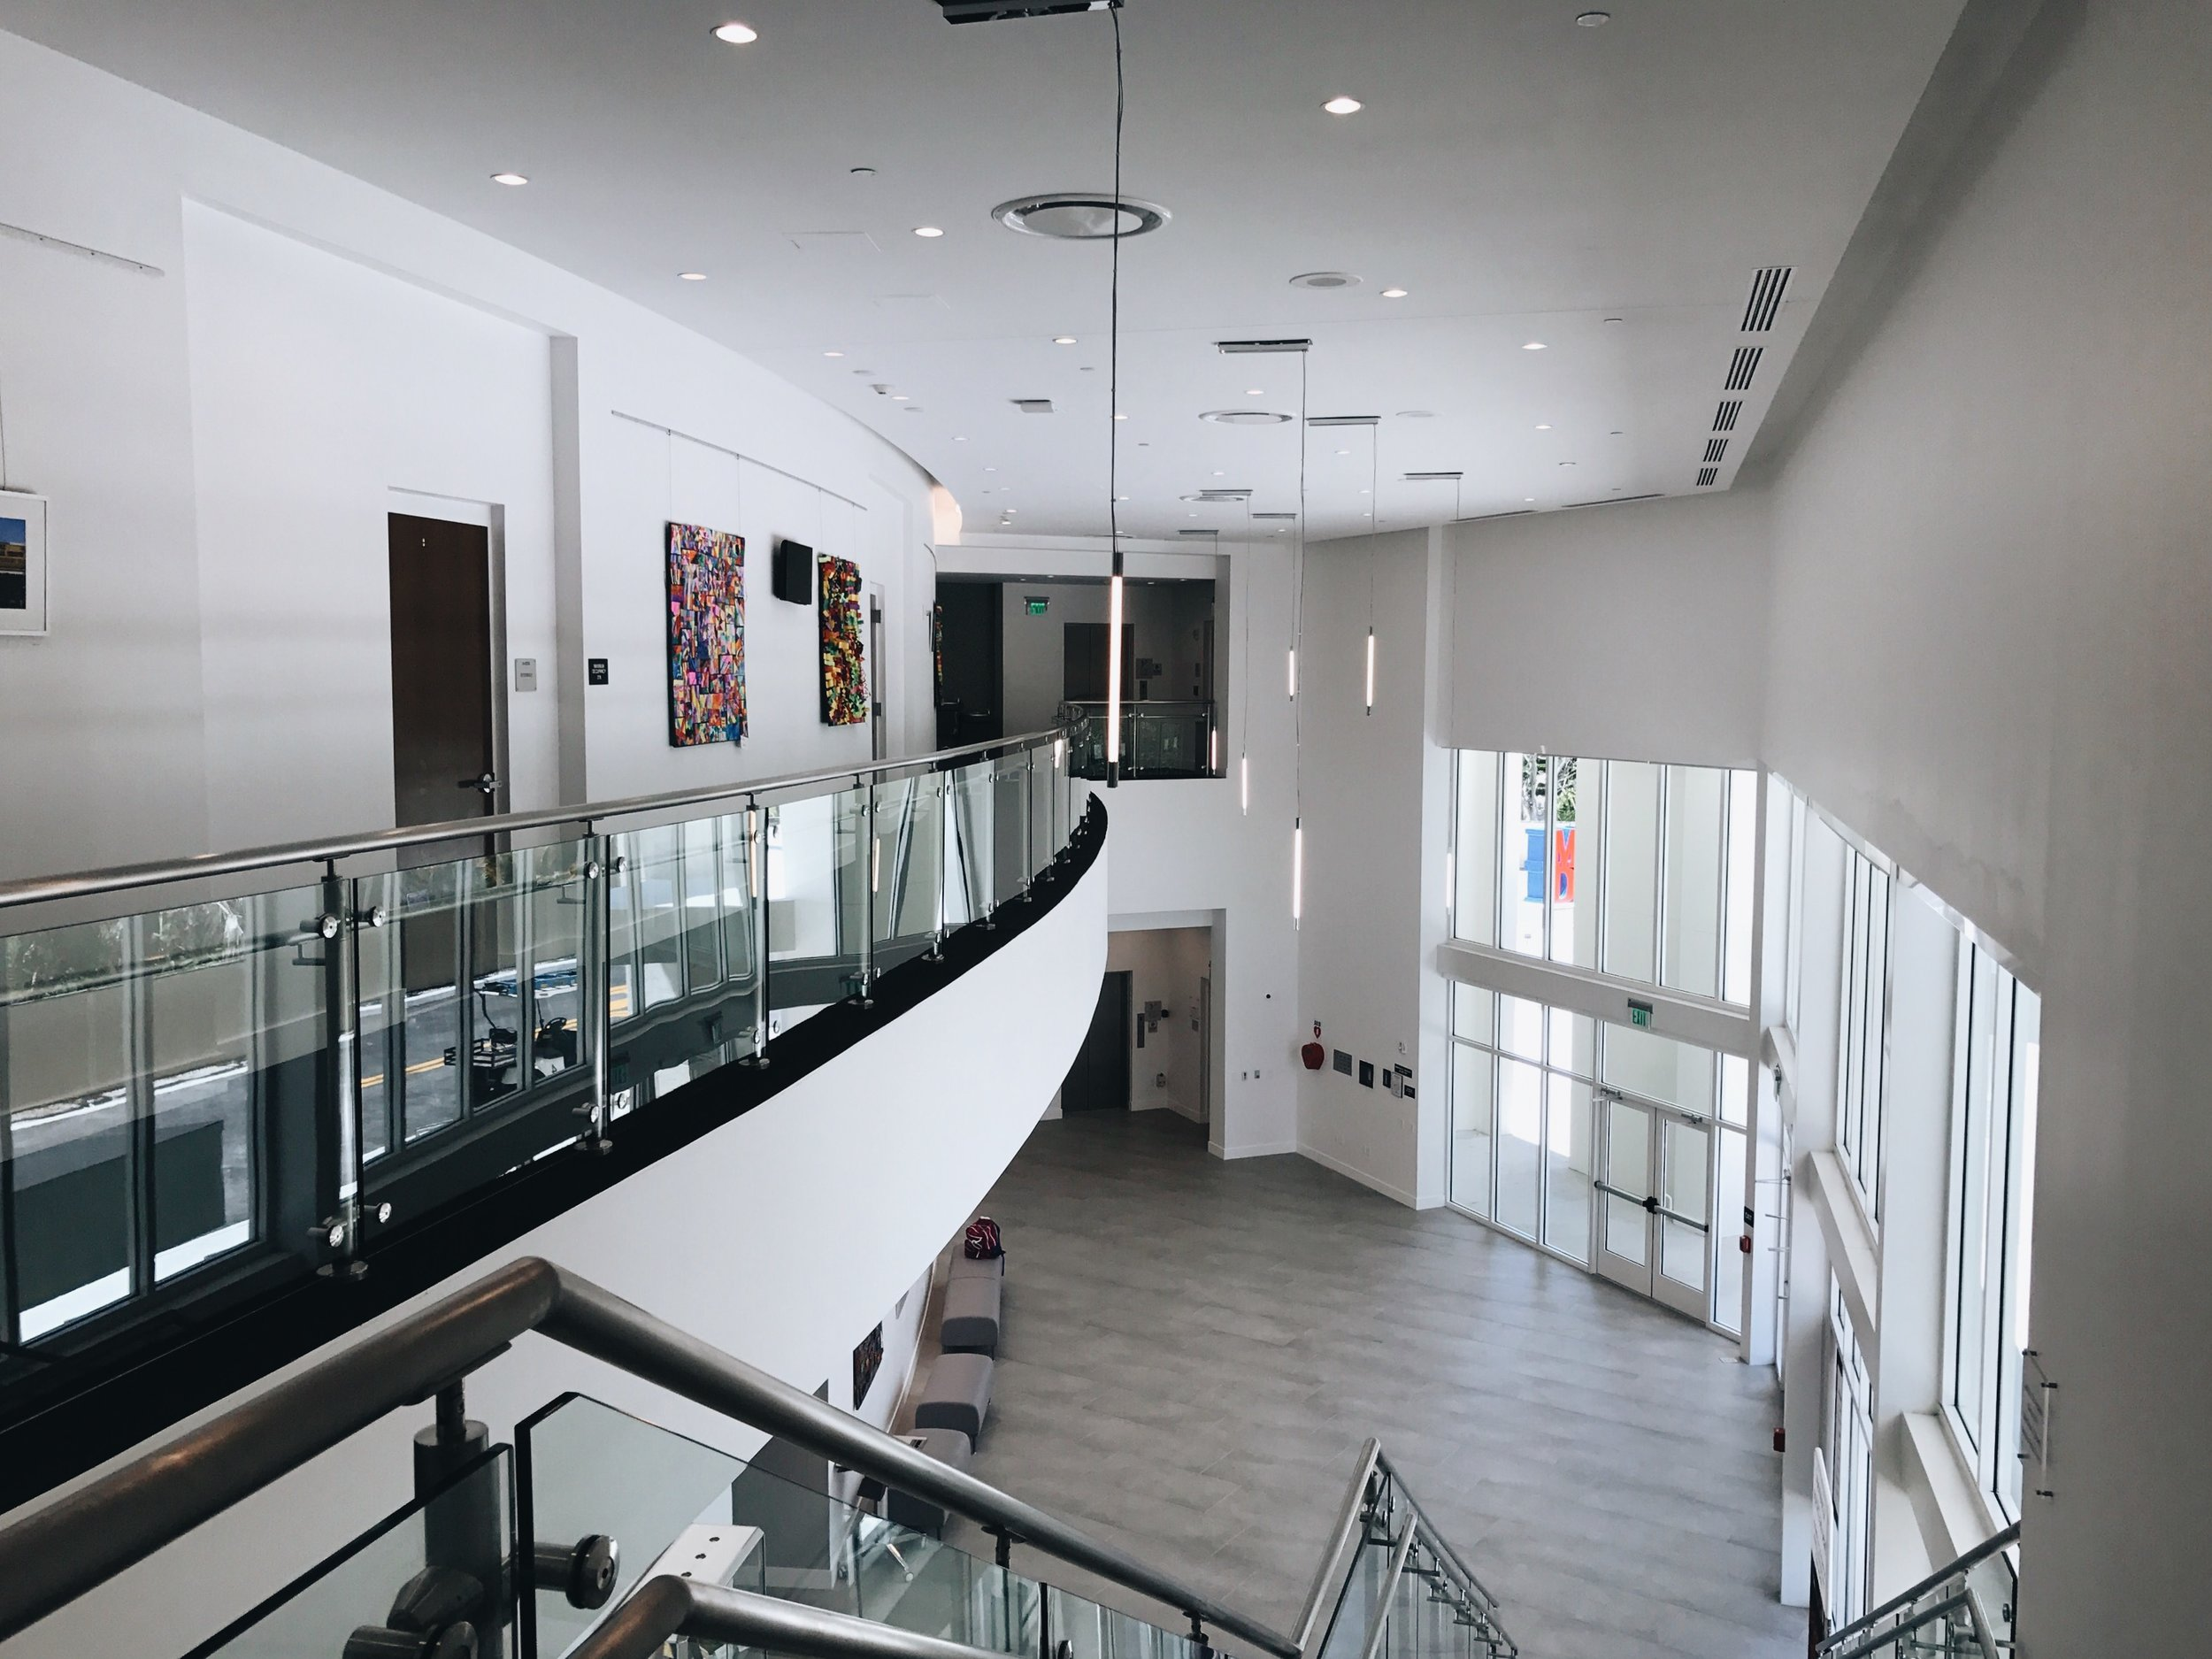 Center for the Arts - We're excited to share that this year, we'll be running a special summer camp session in collaboration with Miami Country Day School at the newly-built Center for the Arts, a gorgeous campus designed especially for the performing and creative arts.